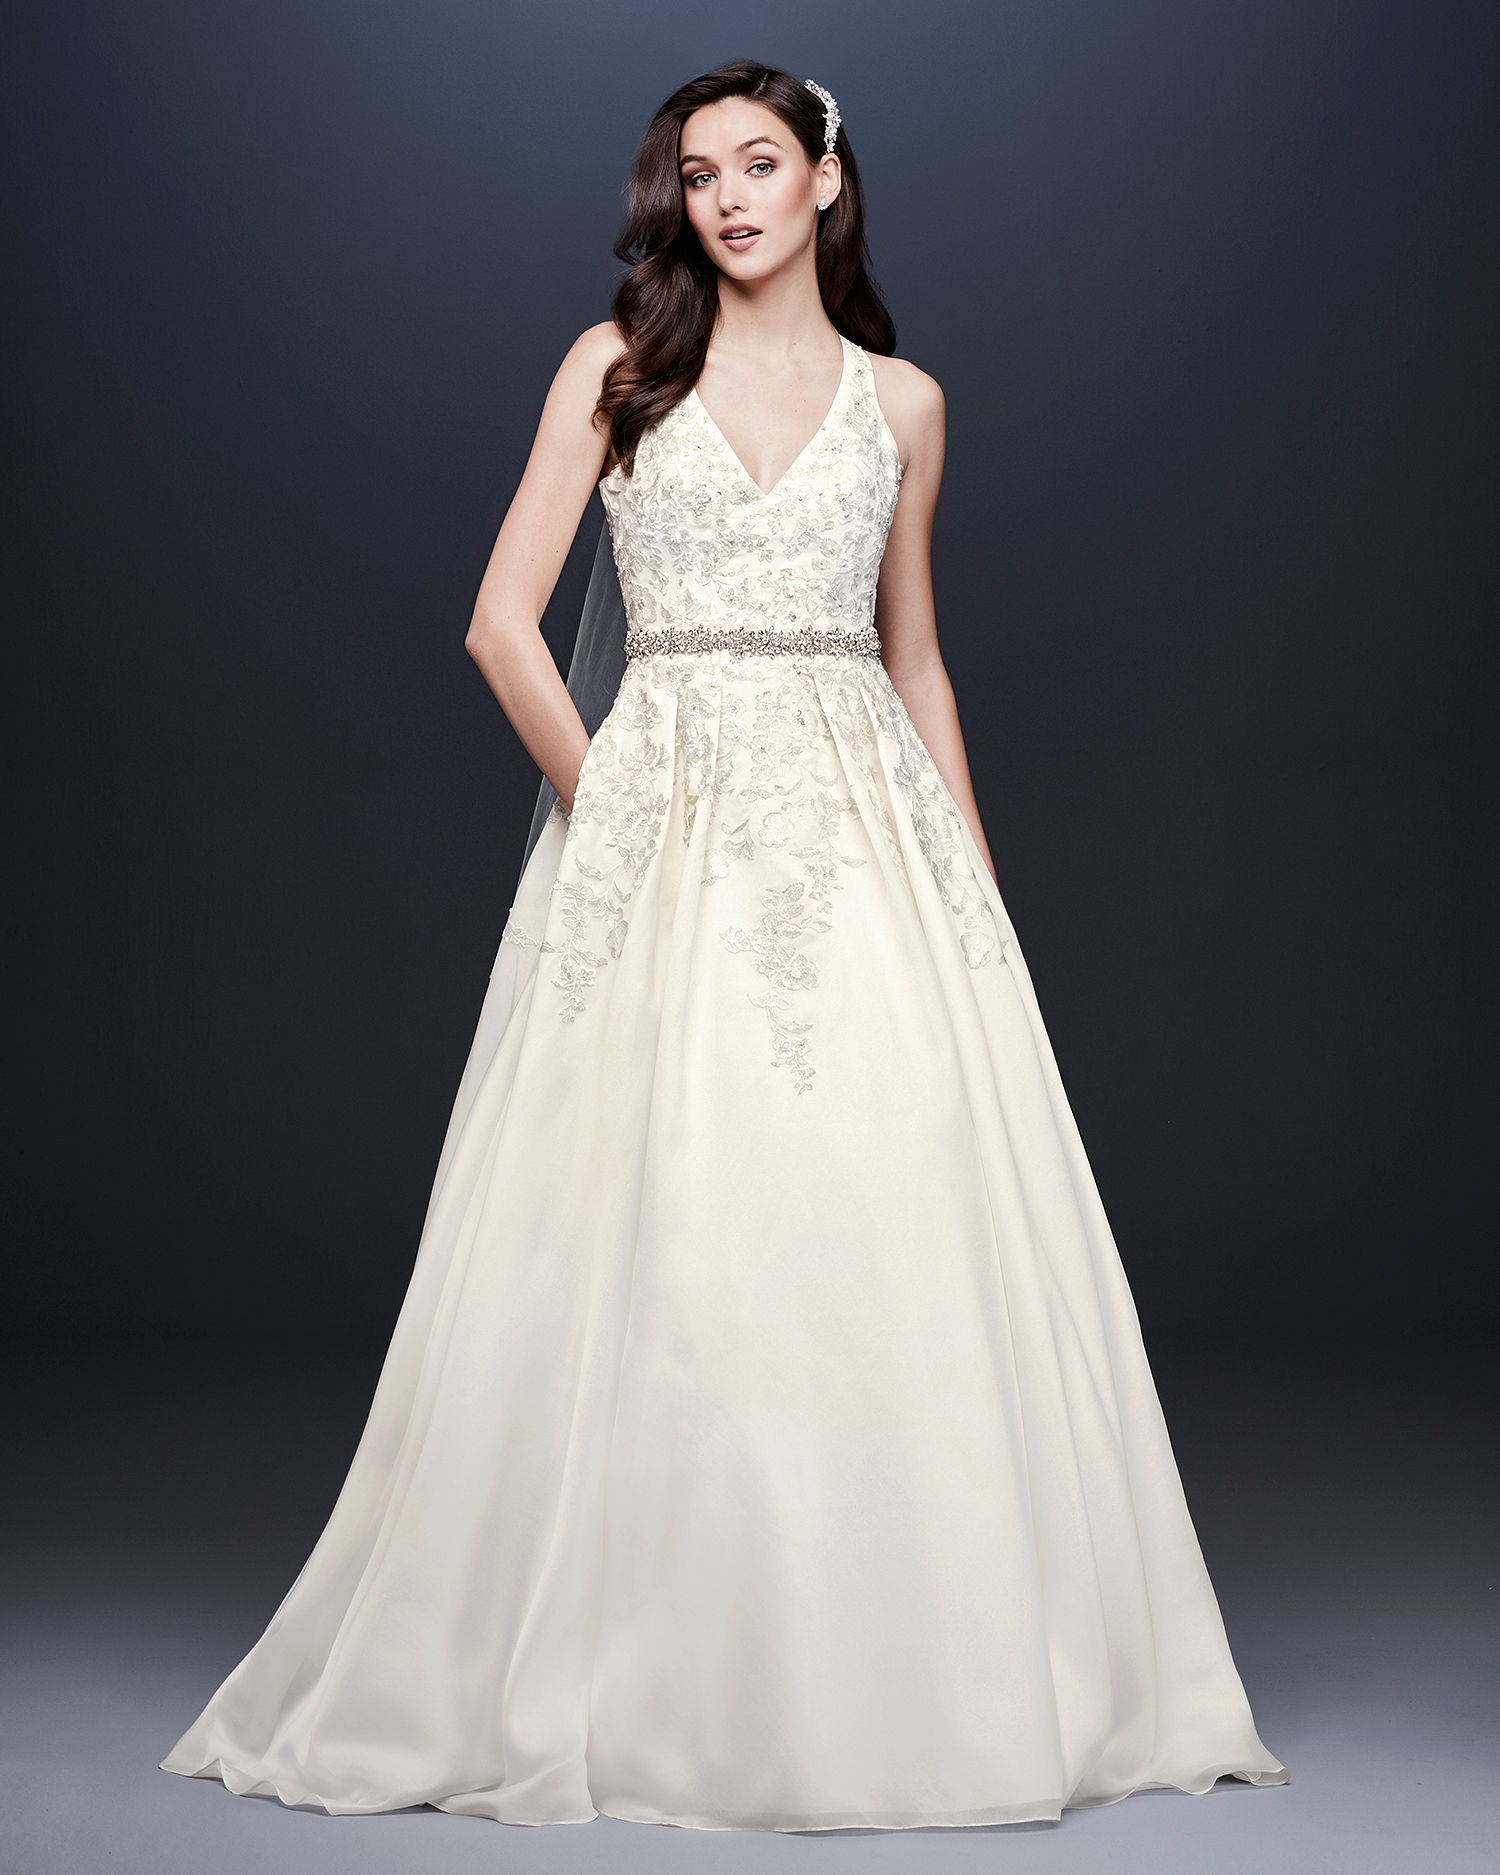 davids bridal wedding dress fall 2019 v-neck a-line with crystal belt